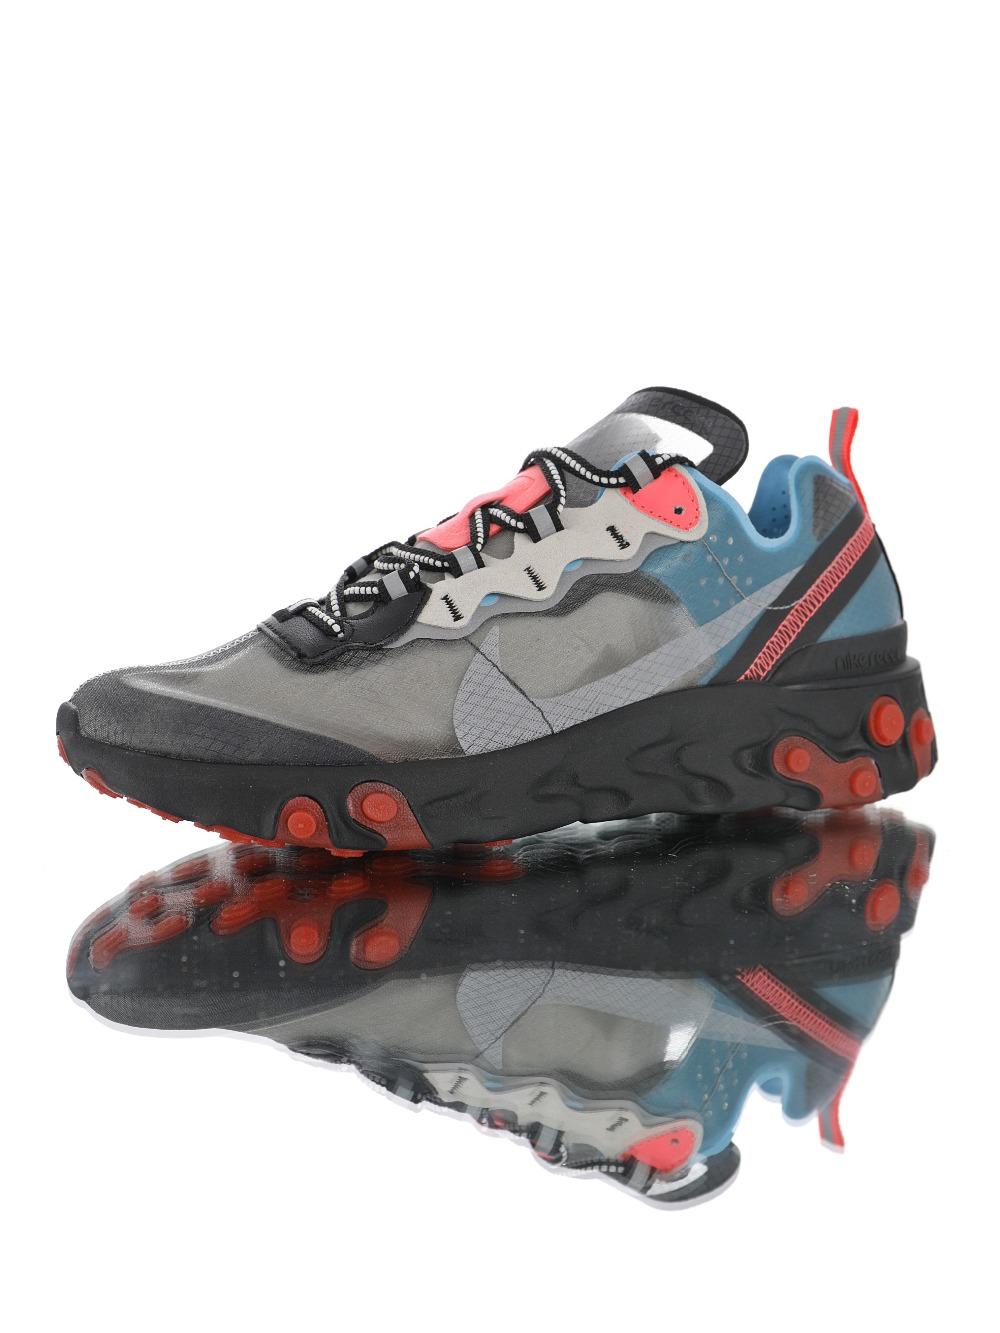 7c1e4d8911d3c Detail Feedback Questions about Nike Upcoming React Element 87 Men s ...